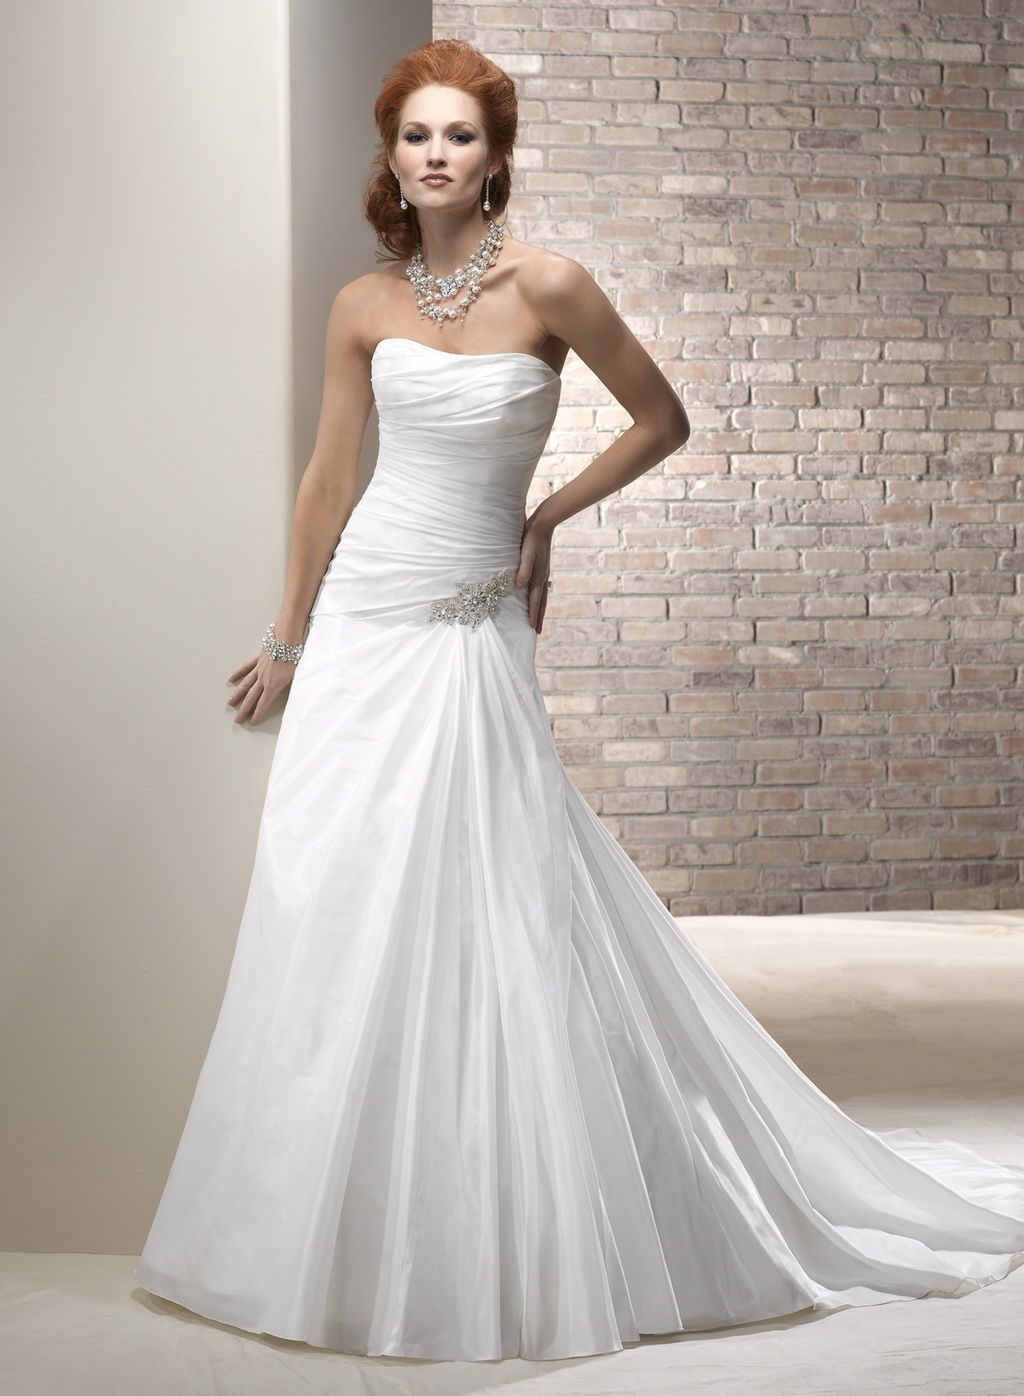 They have this at kayus bridal maggie sottero belize bridal gown